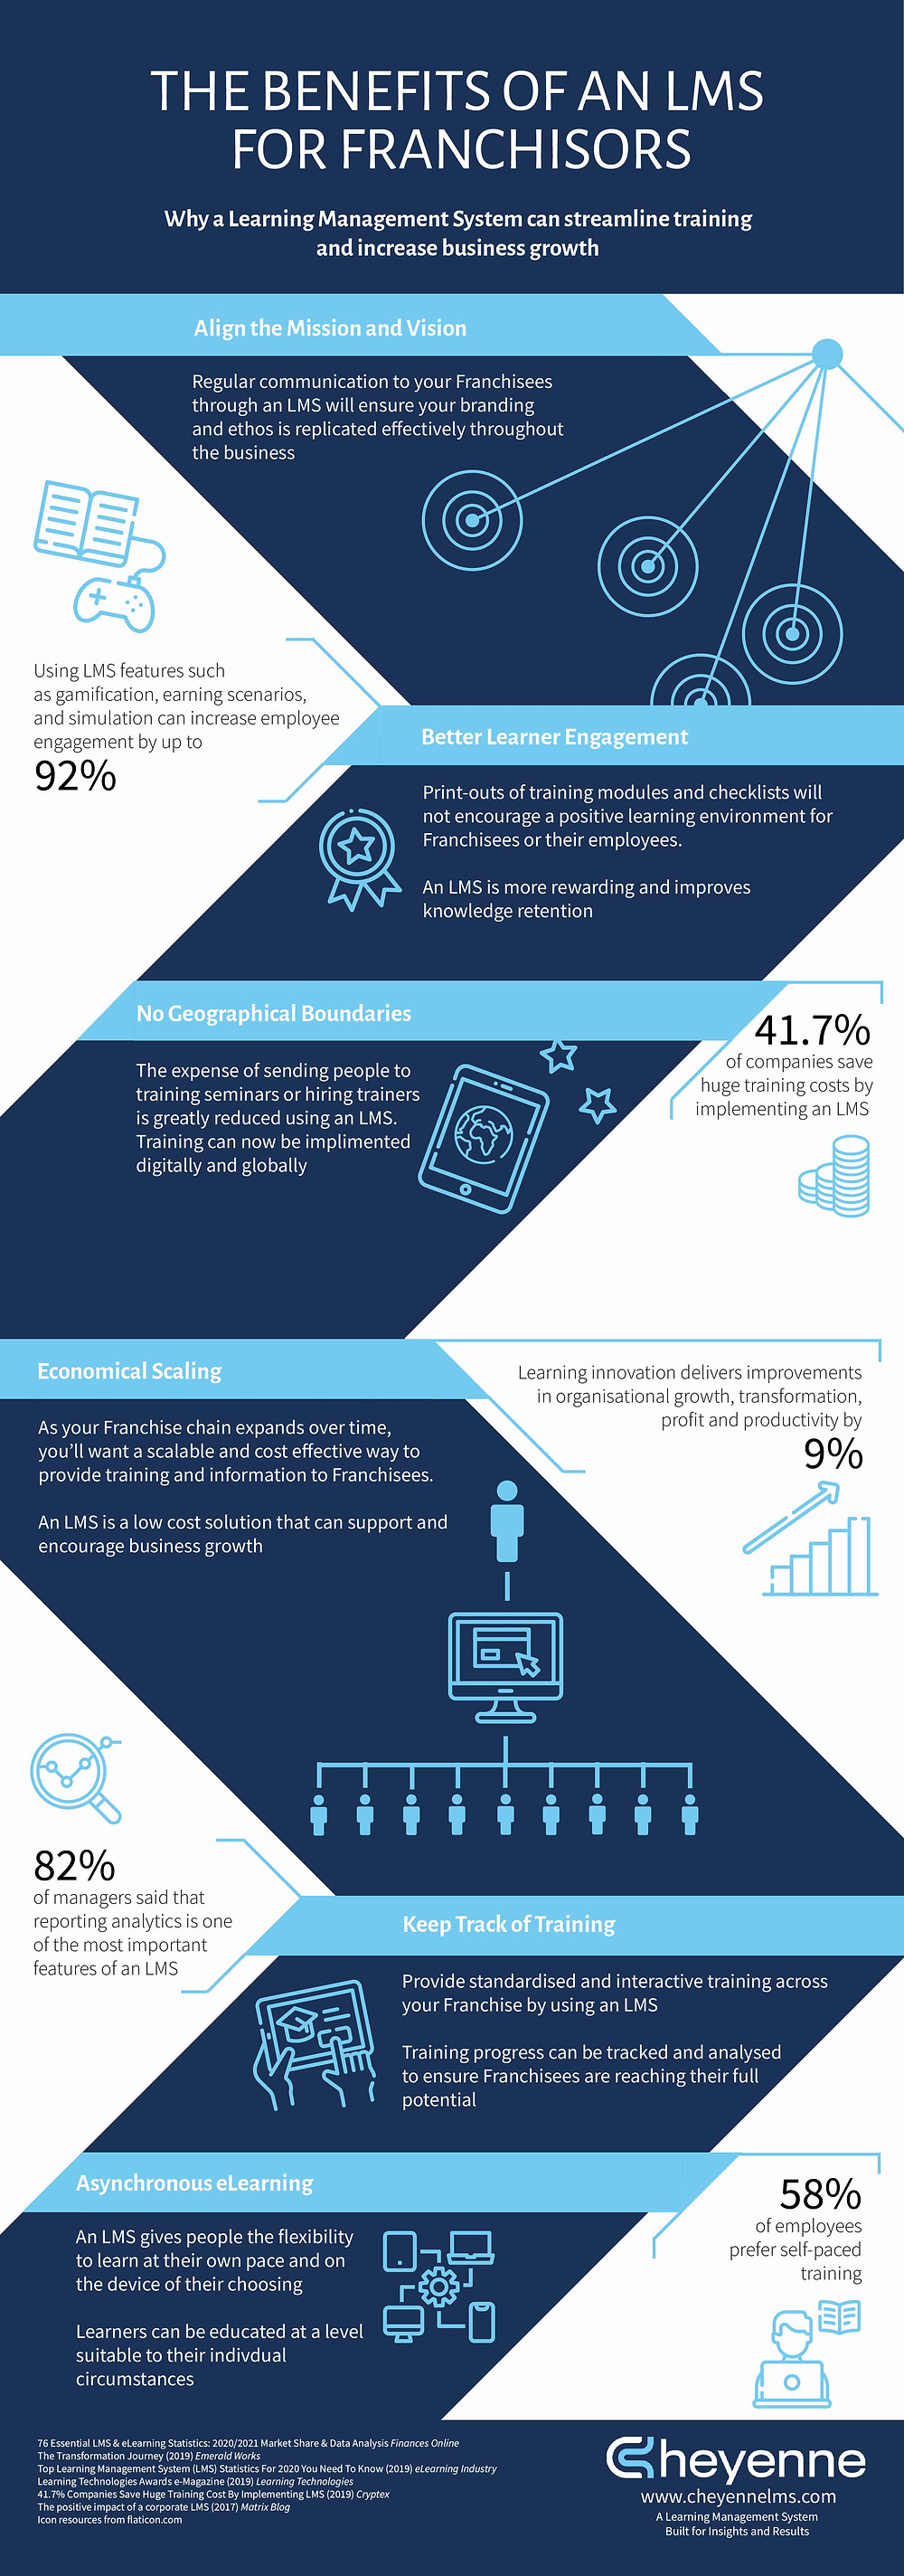 Benefits of an LMS for Franchisors Infographic